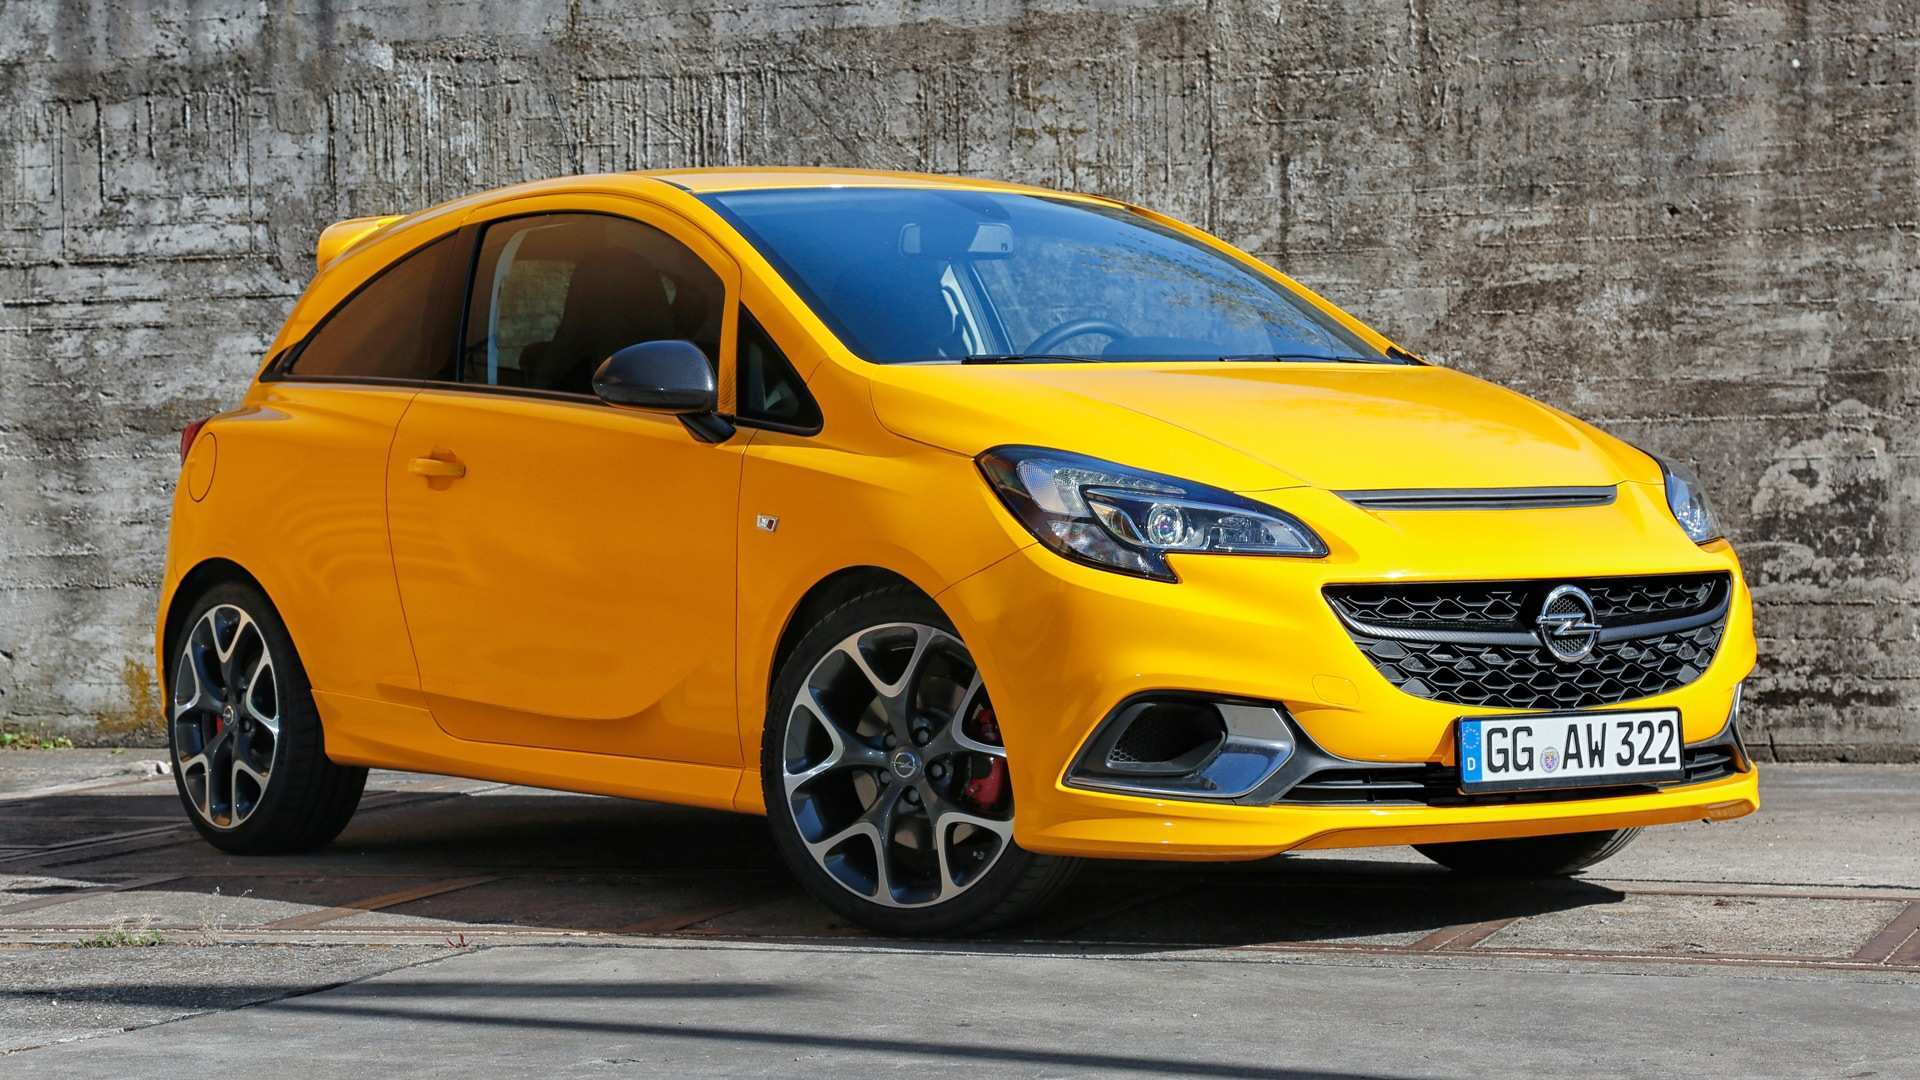 64 Concept of Opel Gsi 2020 Rumors by Opel Gsi 2020